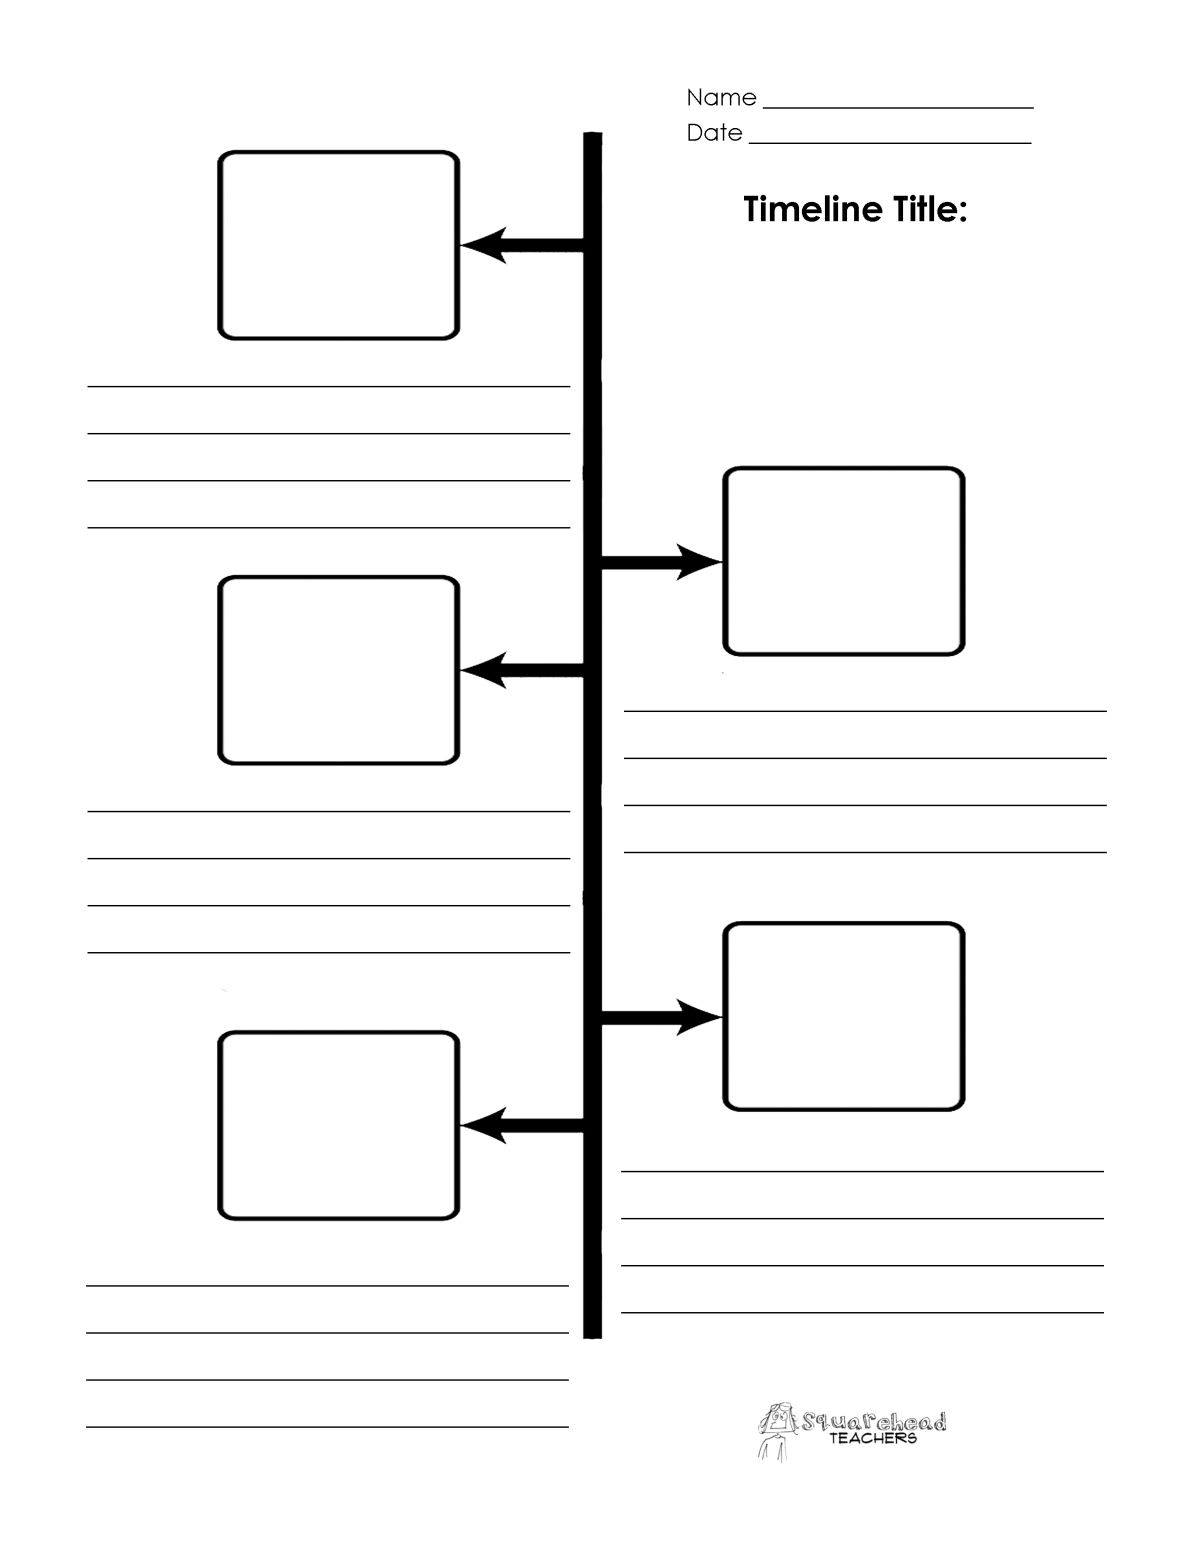 Timeline Boxes And Lines Social Studies Graphic Organizers